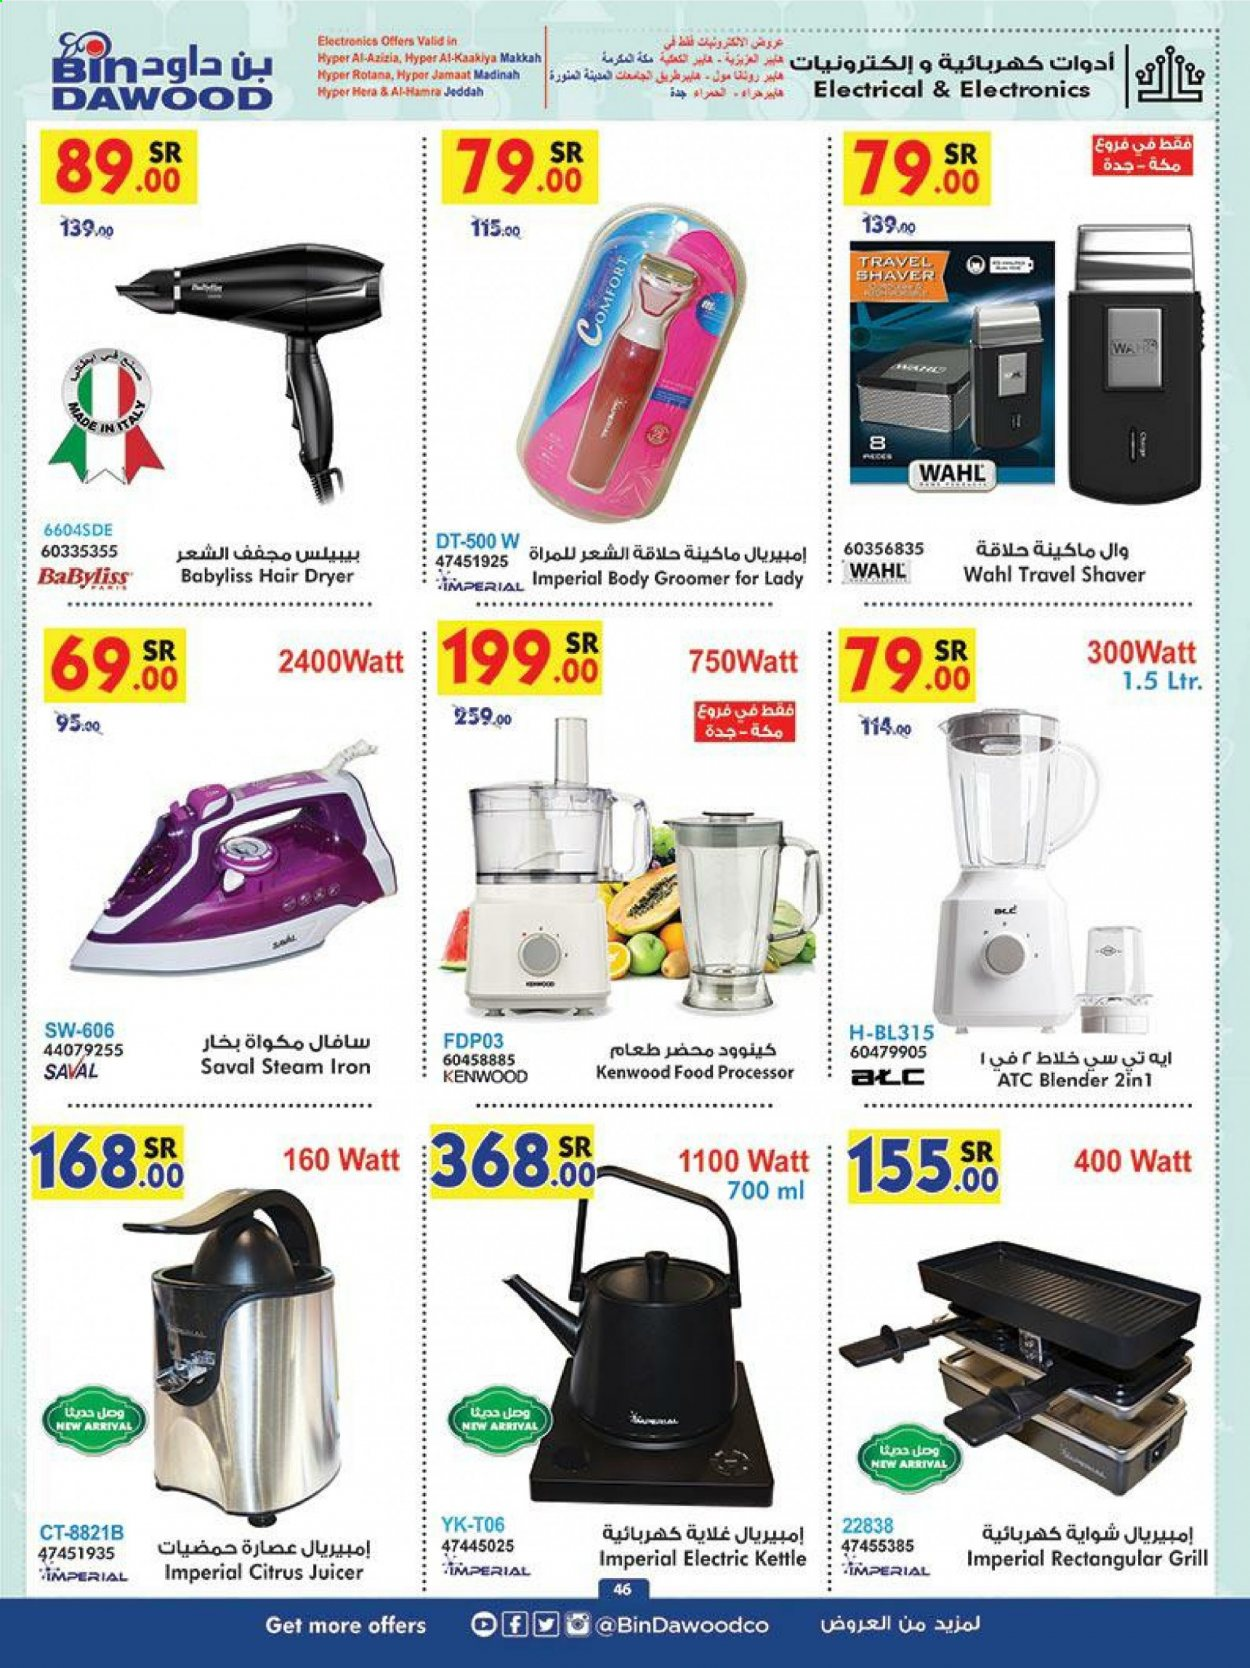 <retailer> - <MM.DD.YYYY - MM.DD.YYYY> - Sales products - ,<products from offers>. Page 46.